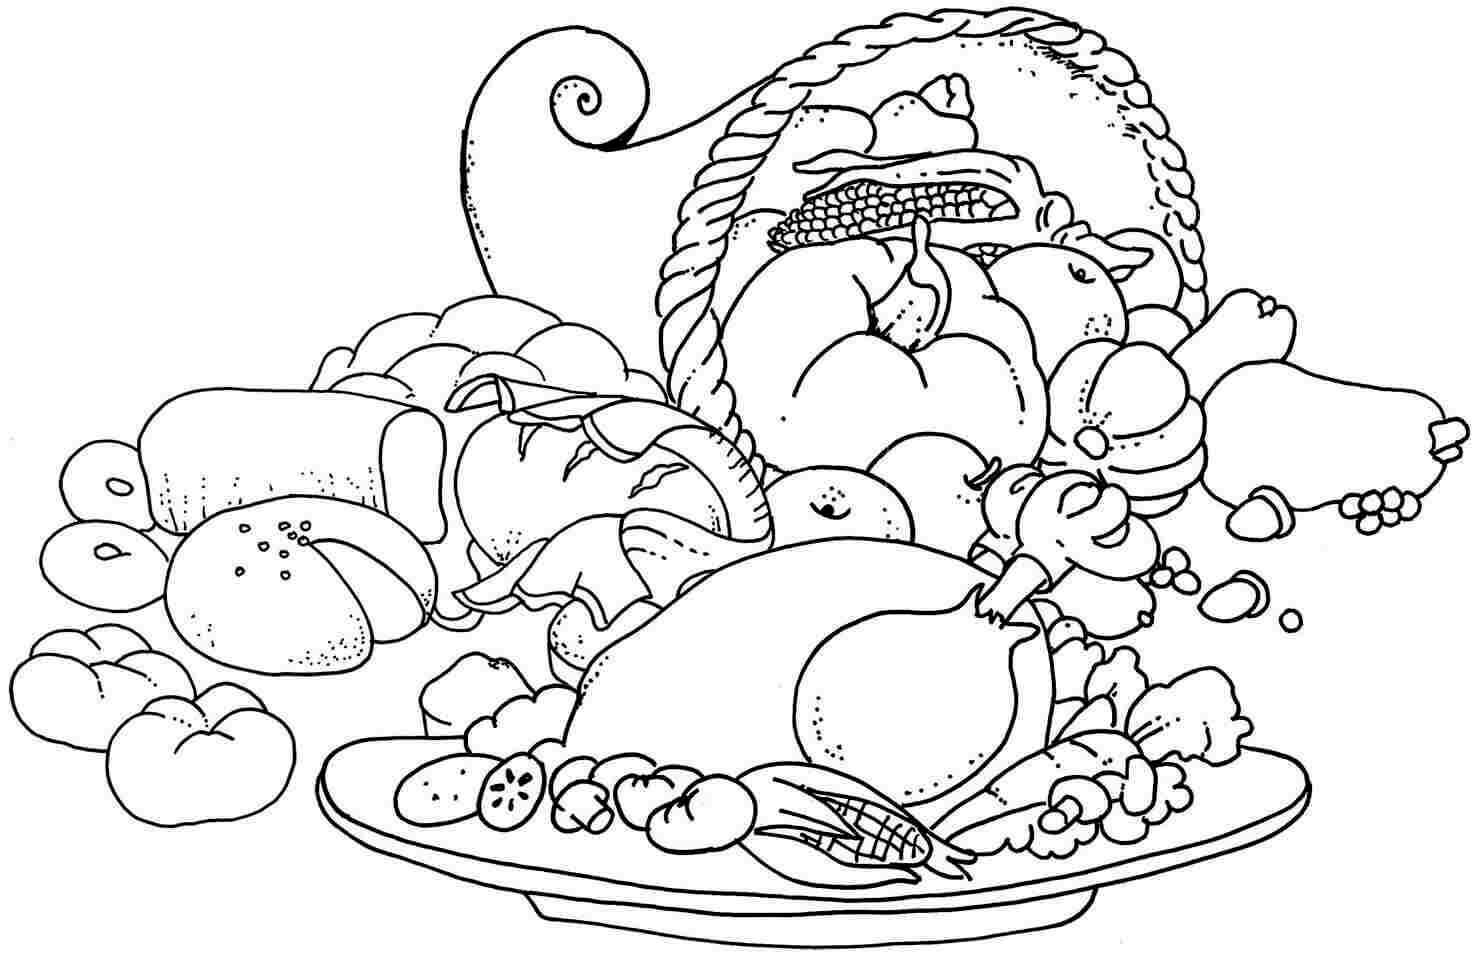 coloring pages of food junk food coloring pages coloring home coloring food pages of